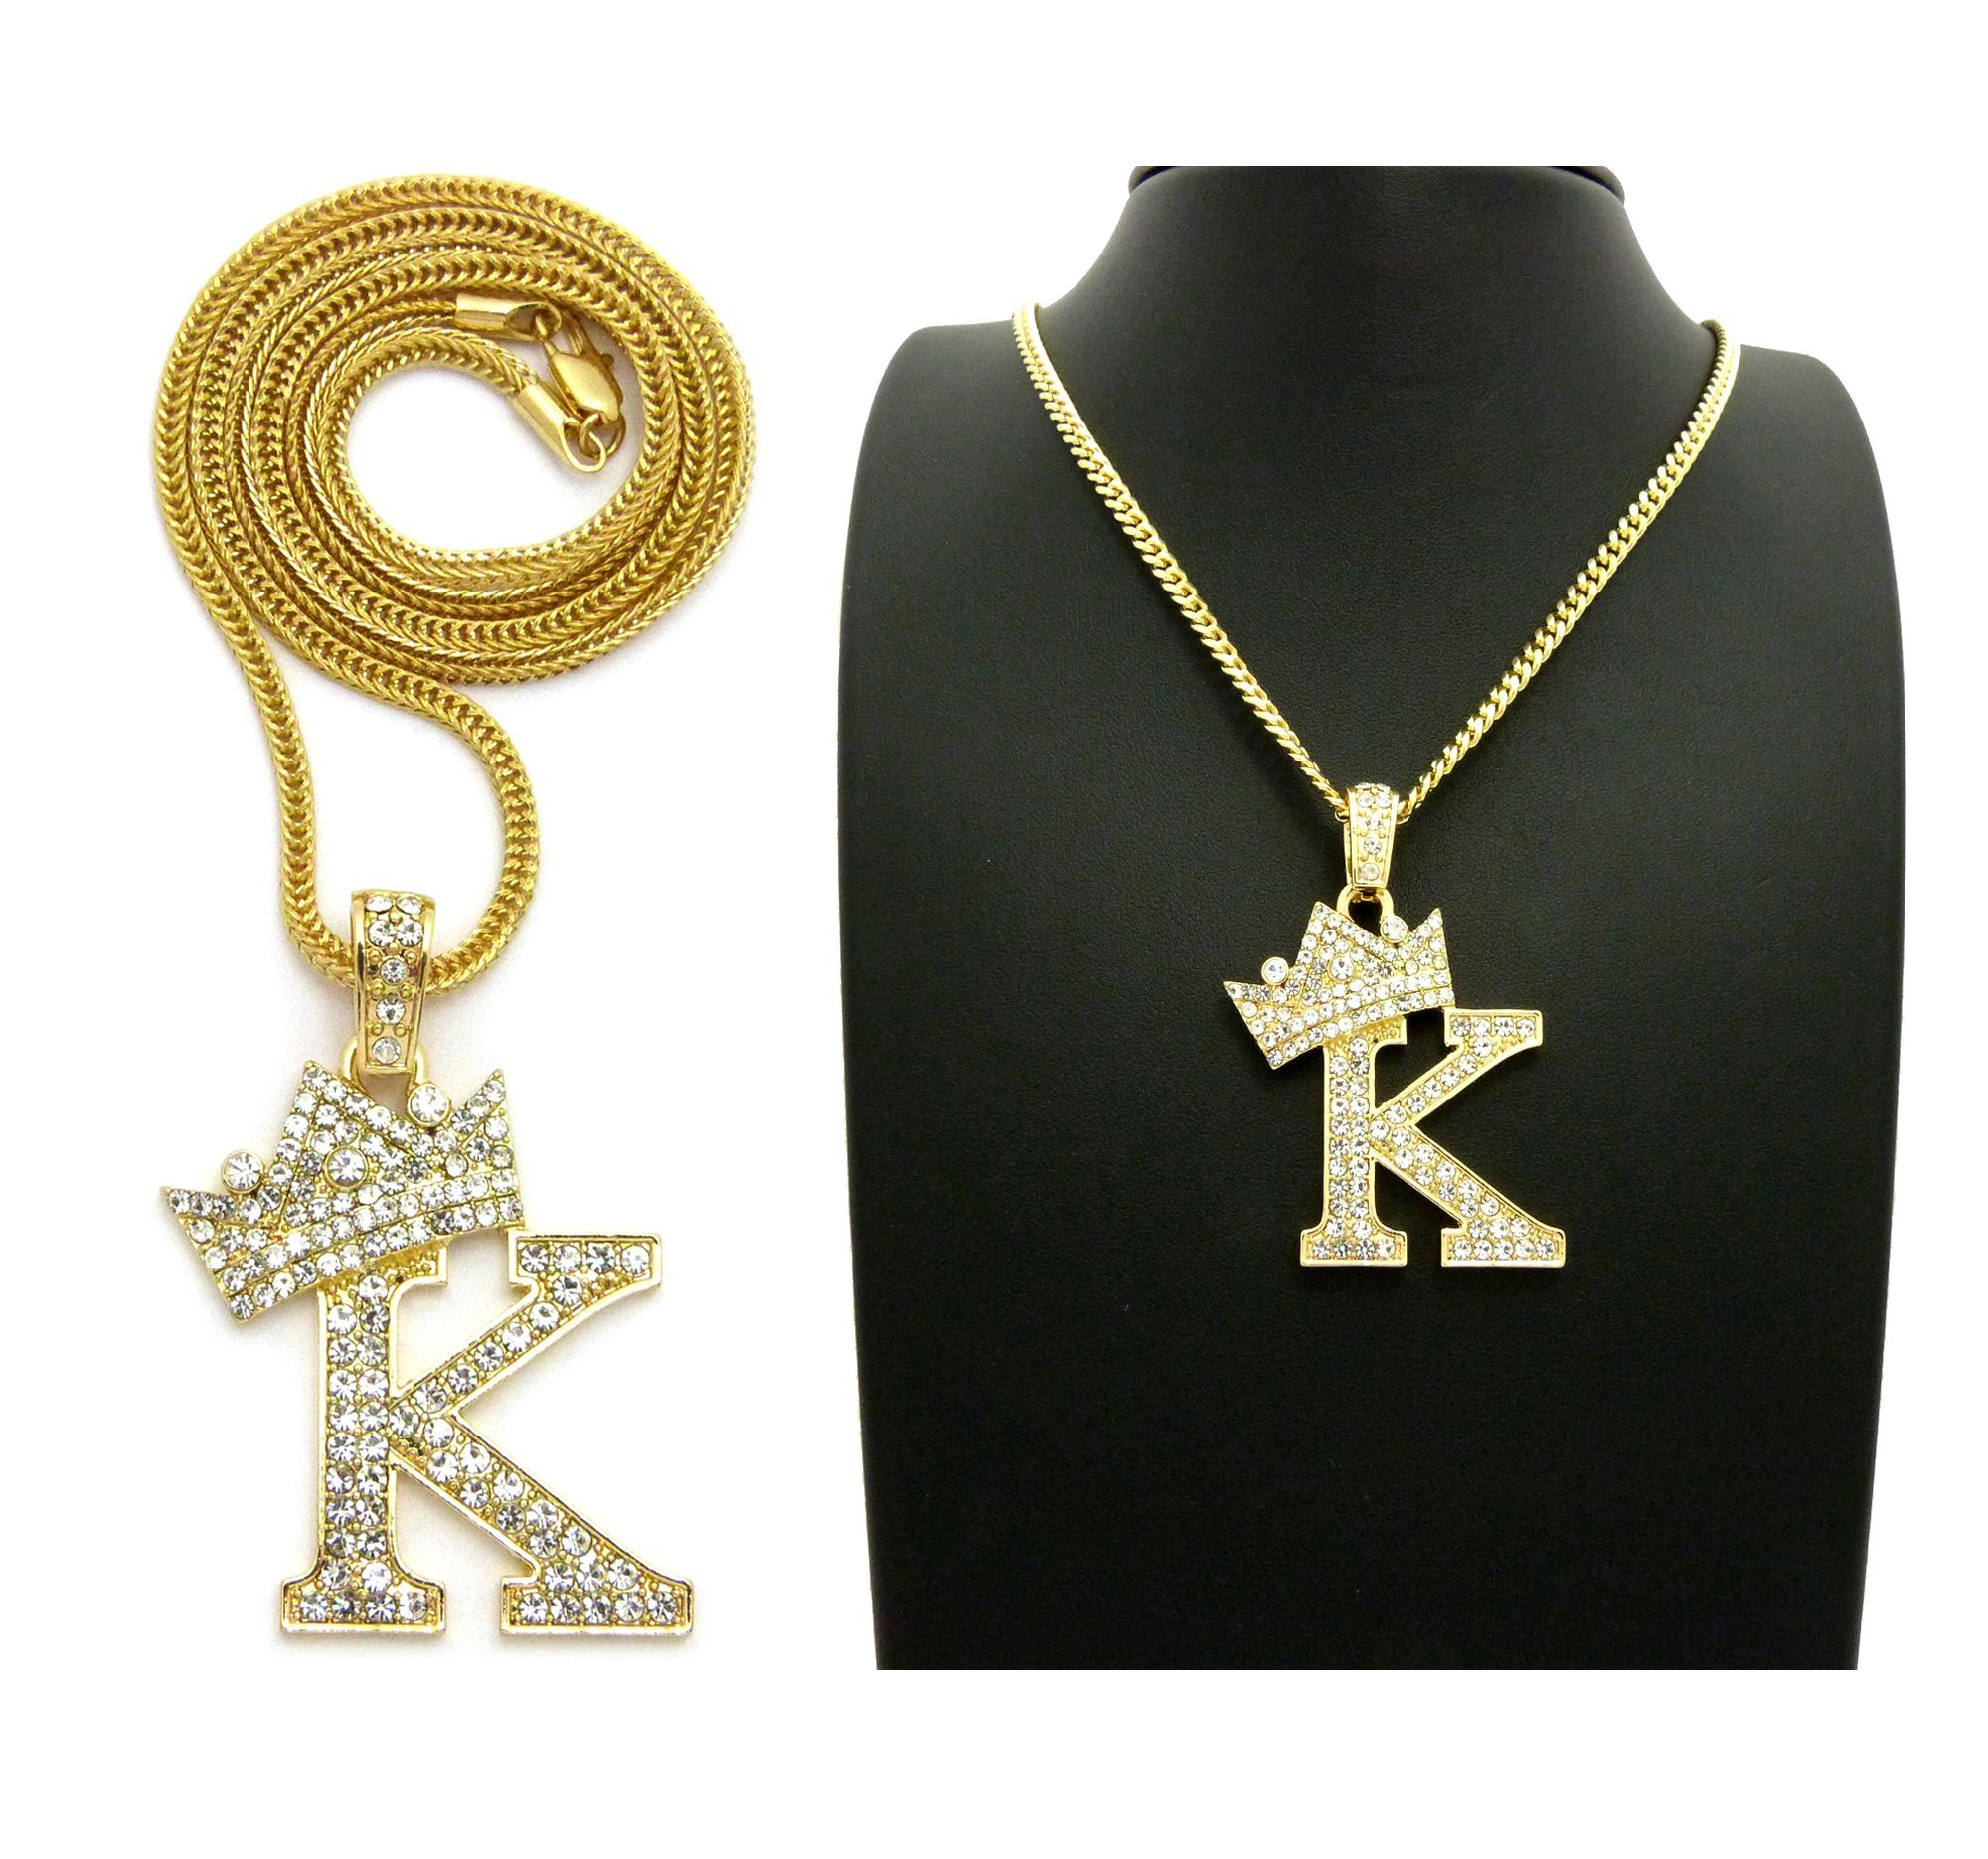 3088a466b3c23 ICED OUT KING 'K' PENDANT & 24